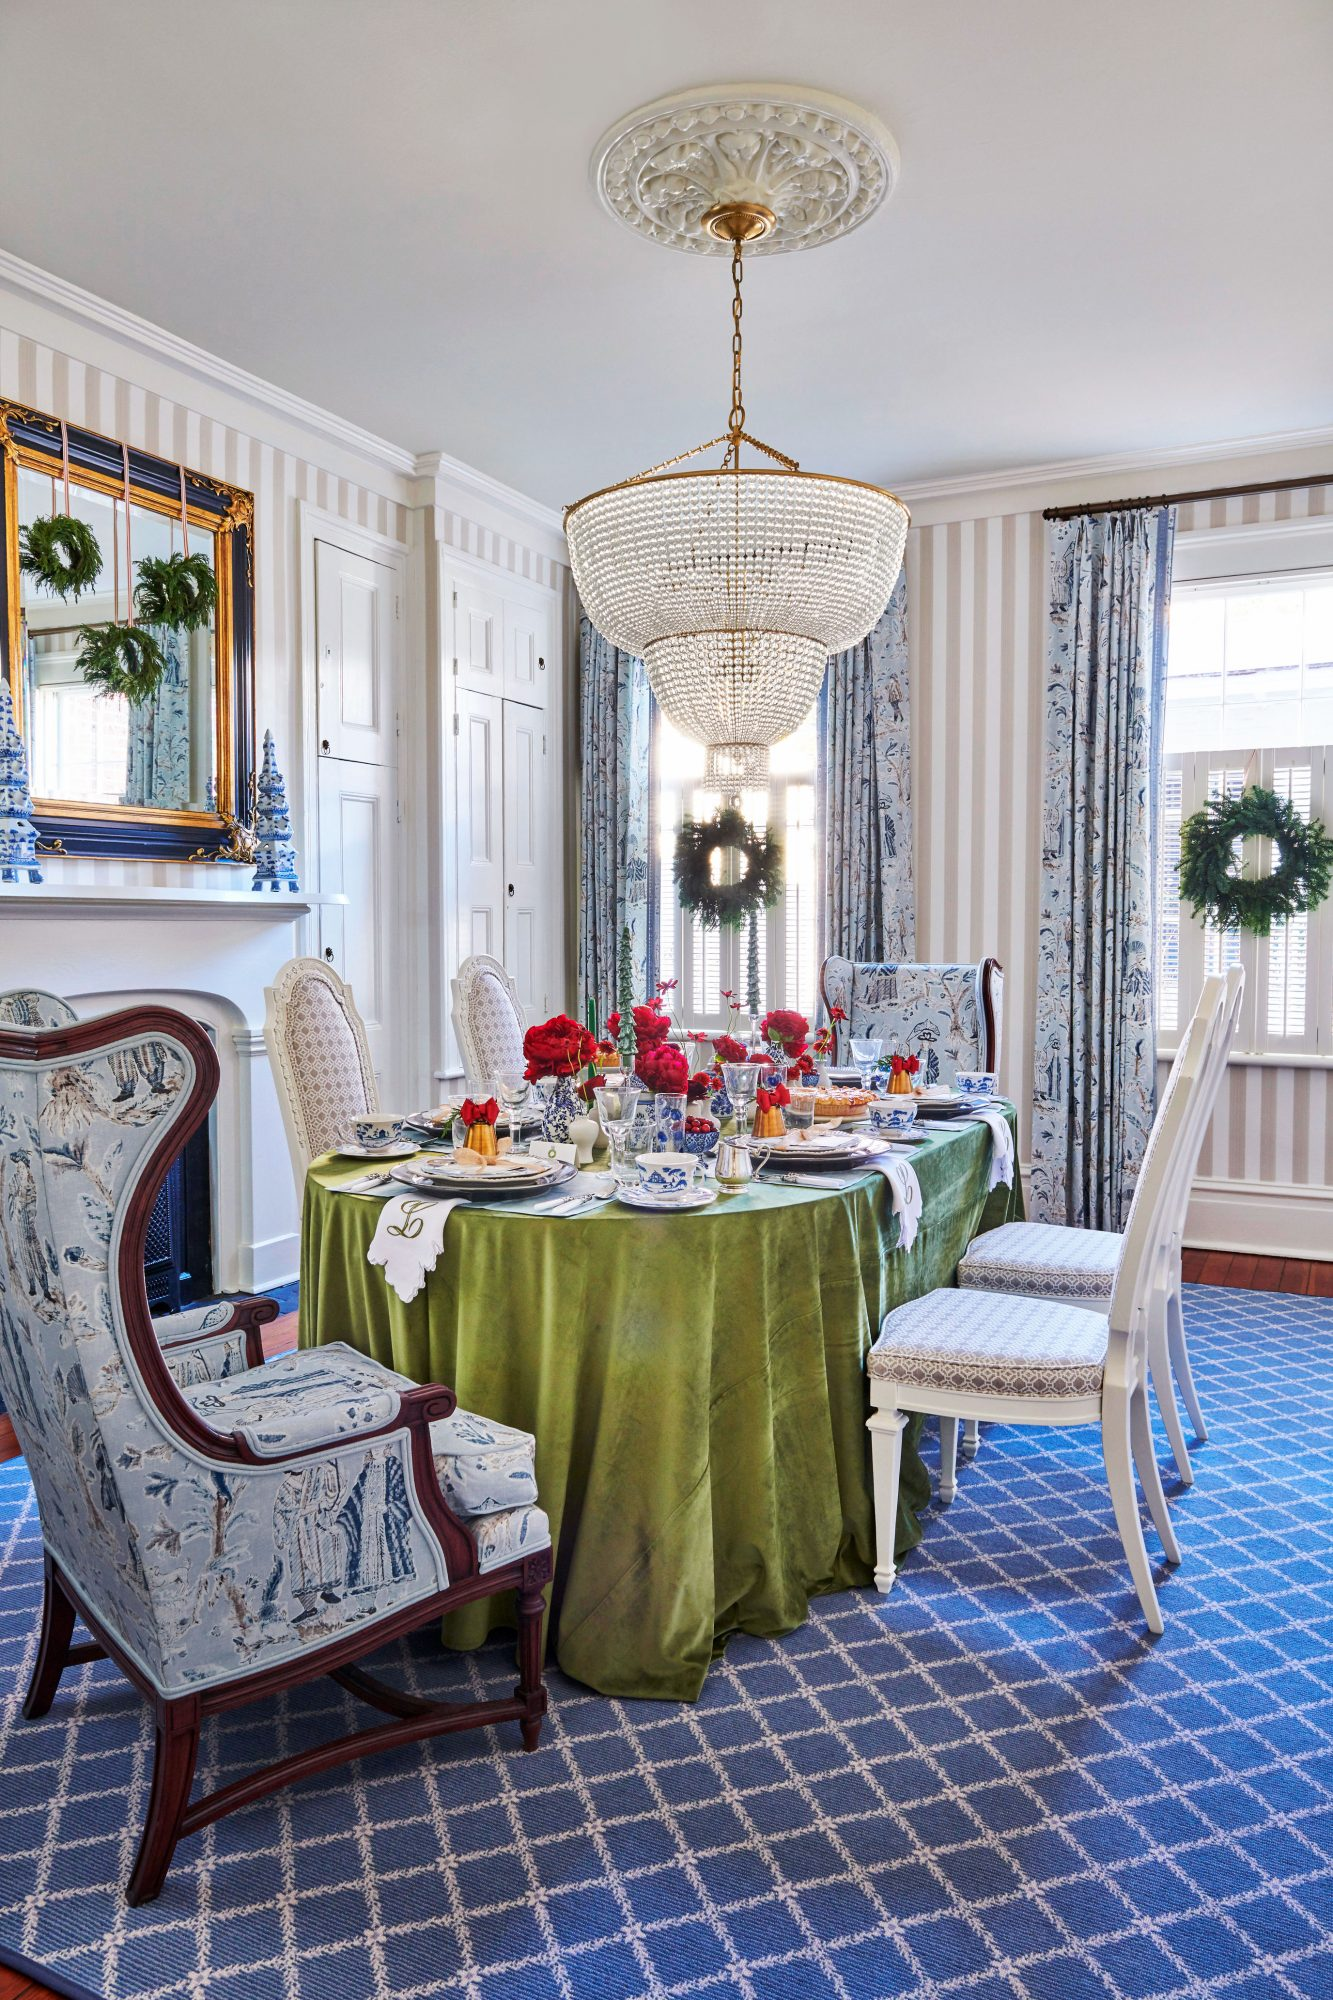 Blue and Green Dining Room with Striped Walls decorated for Christmas